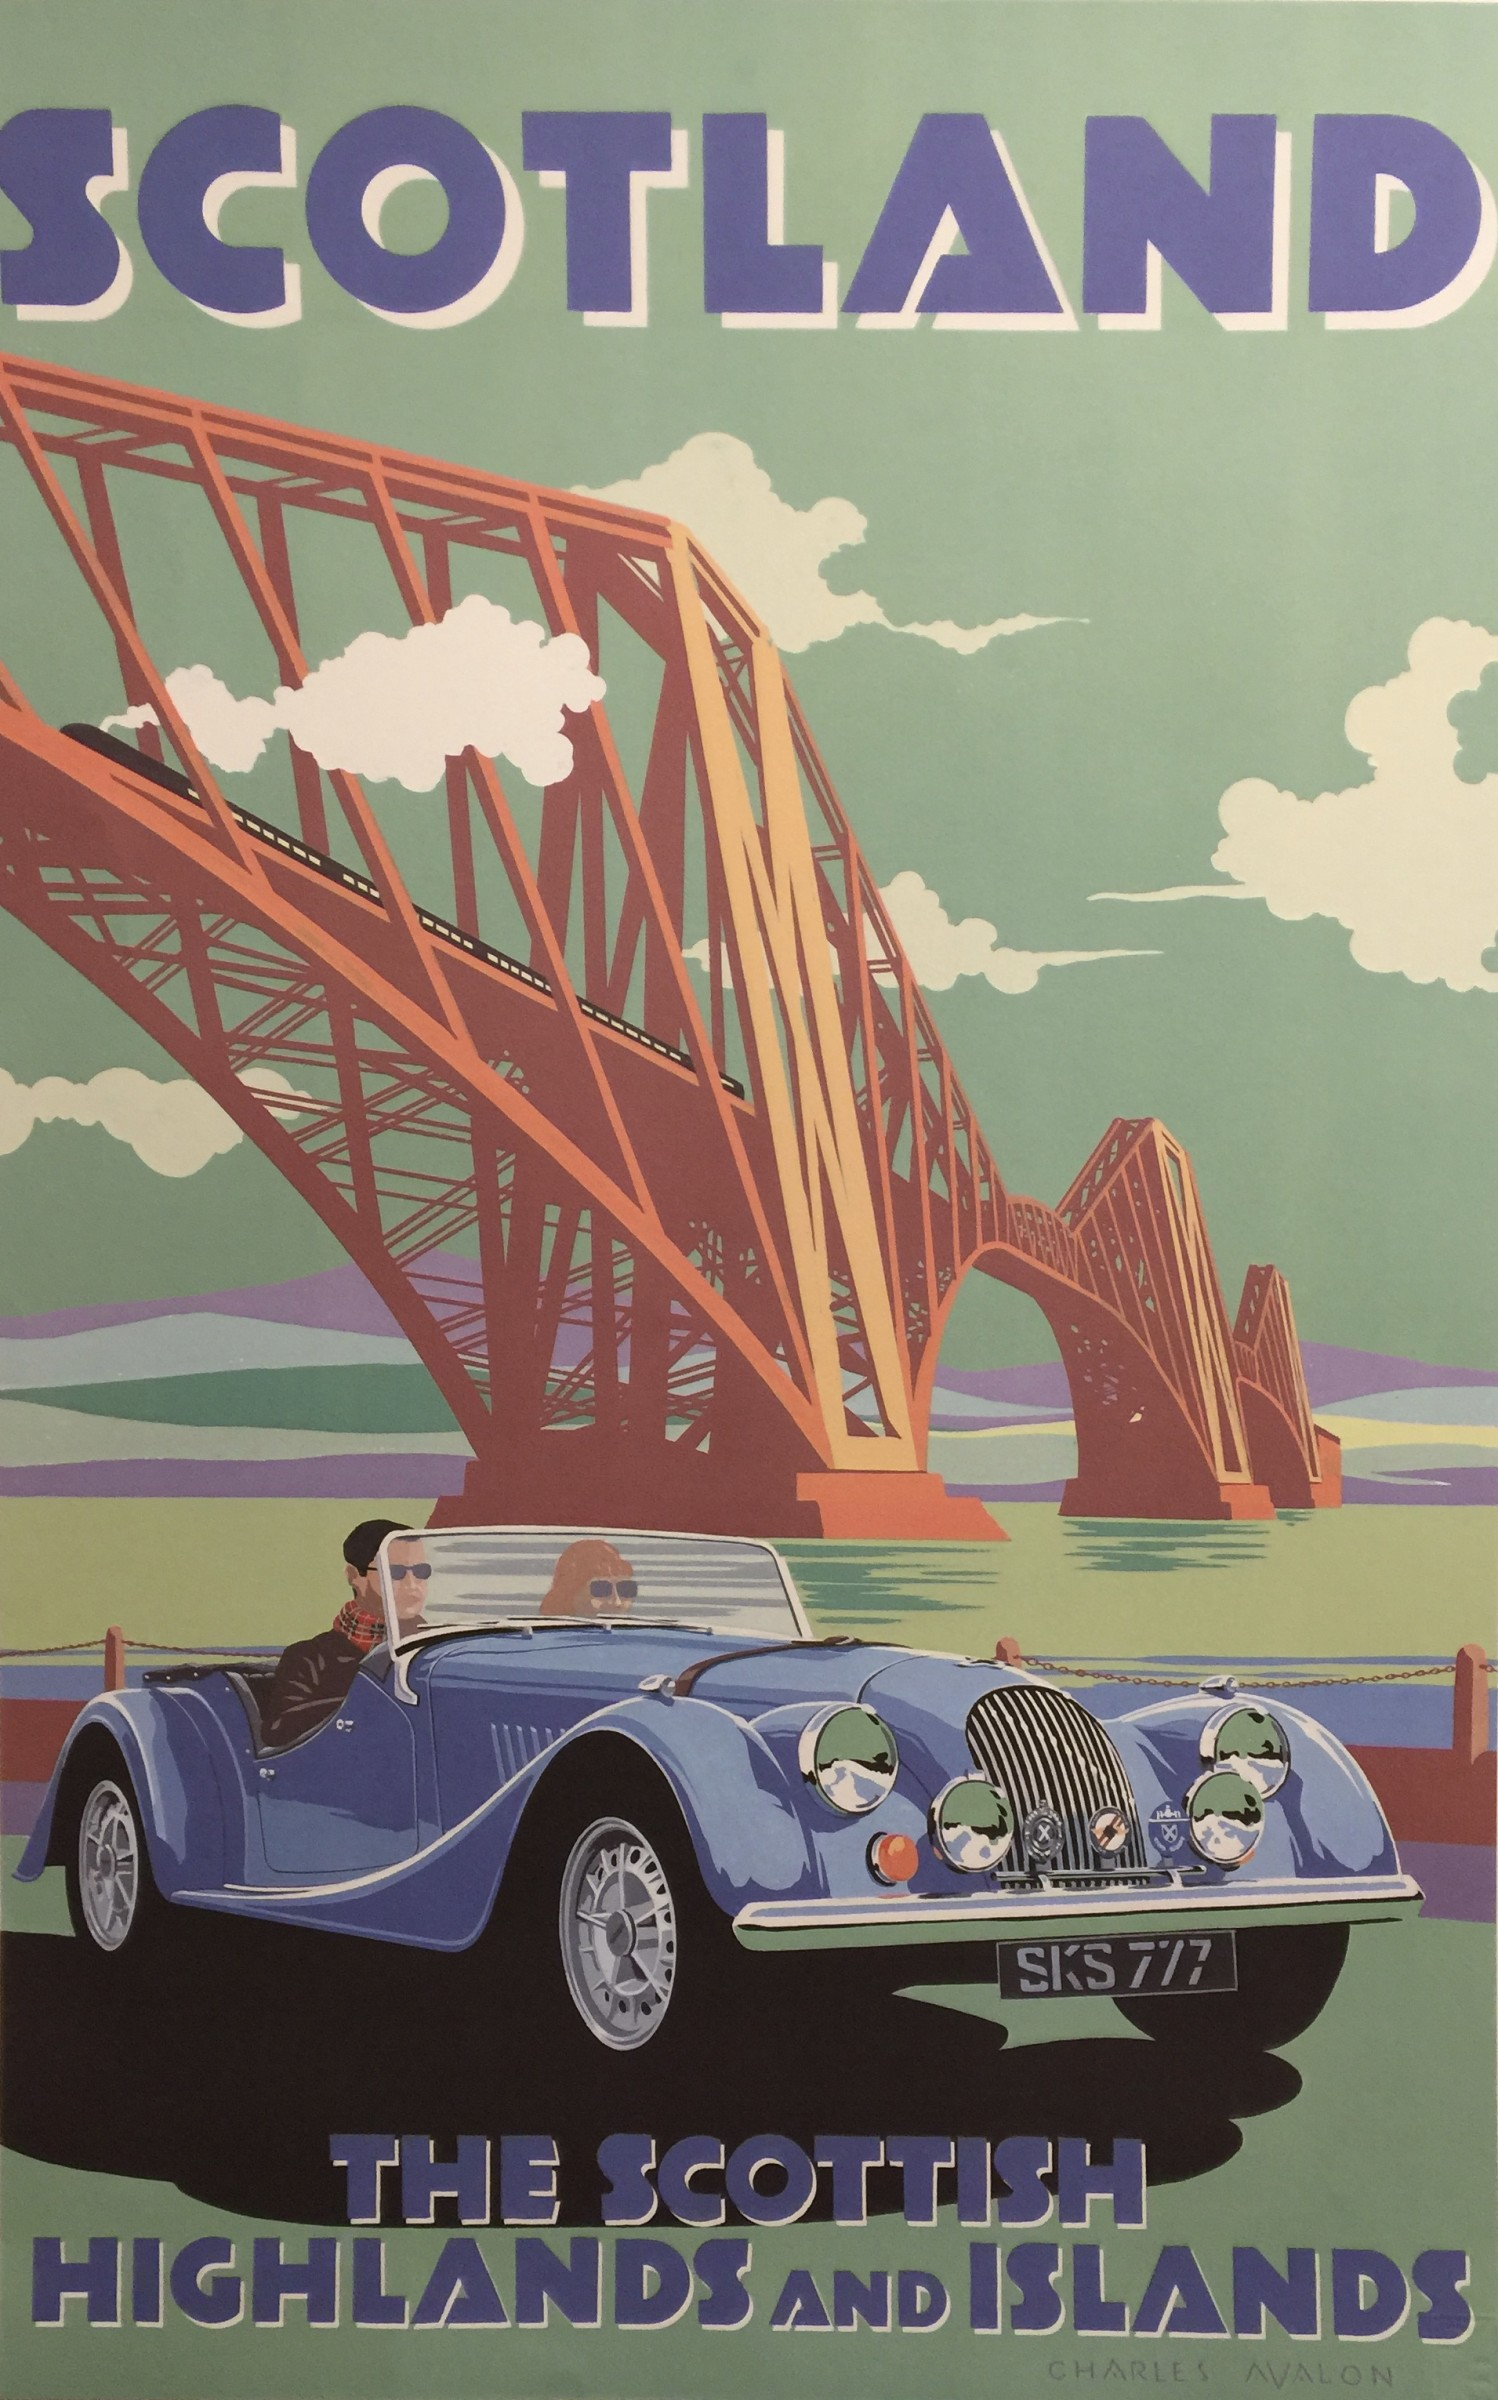 "<span class=""link fancybox-details-link""><a href=""/artists/55-charles-avalon/works/503-charles-avalon-morgan-plus-scotland/"">View Detail Page</a></span><div class=""artist""><strong>Charles Avalon</strong></div> <div class=""title""><em>Morgan Plus  - Scotland</em></div> <div class=""medium"">Limited Edition Print</div> <div class=""dimensions"">97 x 64 cm</div> <div class=""edition_details"">45/280</div><div class=""price"">£412.50</div>"